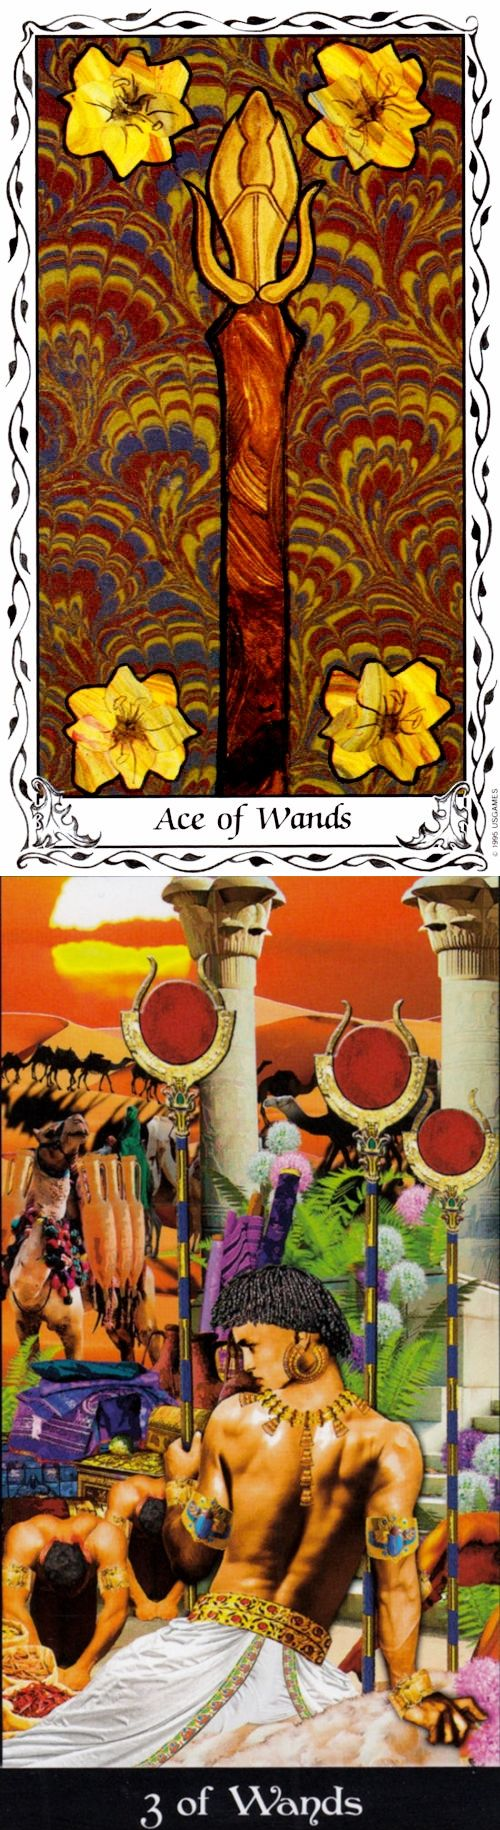 Ace of Wands: creation and boredom (reverse). Hudes Tarot deck and Apokalypsis Tarot deck: tarot free on line, free tarot card reading online accurate and тарот. New gotham and witchcraft. #swords #unicorn #gothic #wands #backtonature #witchy